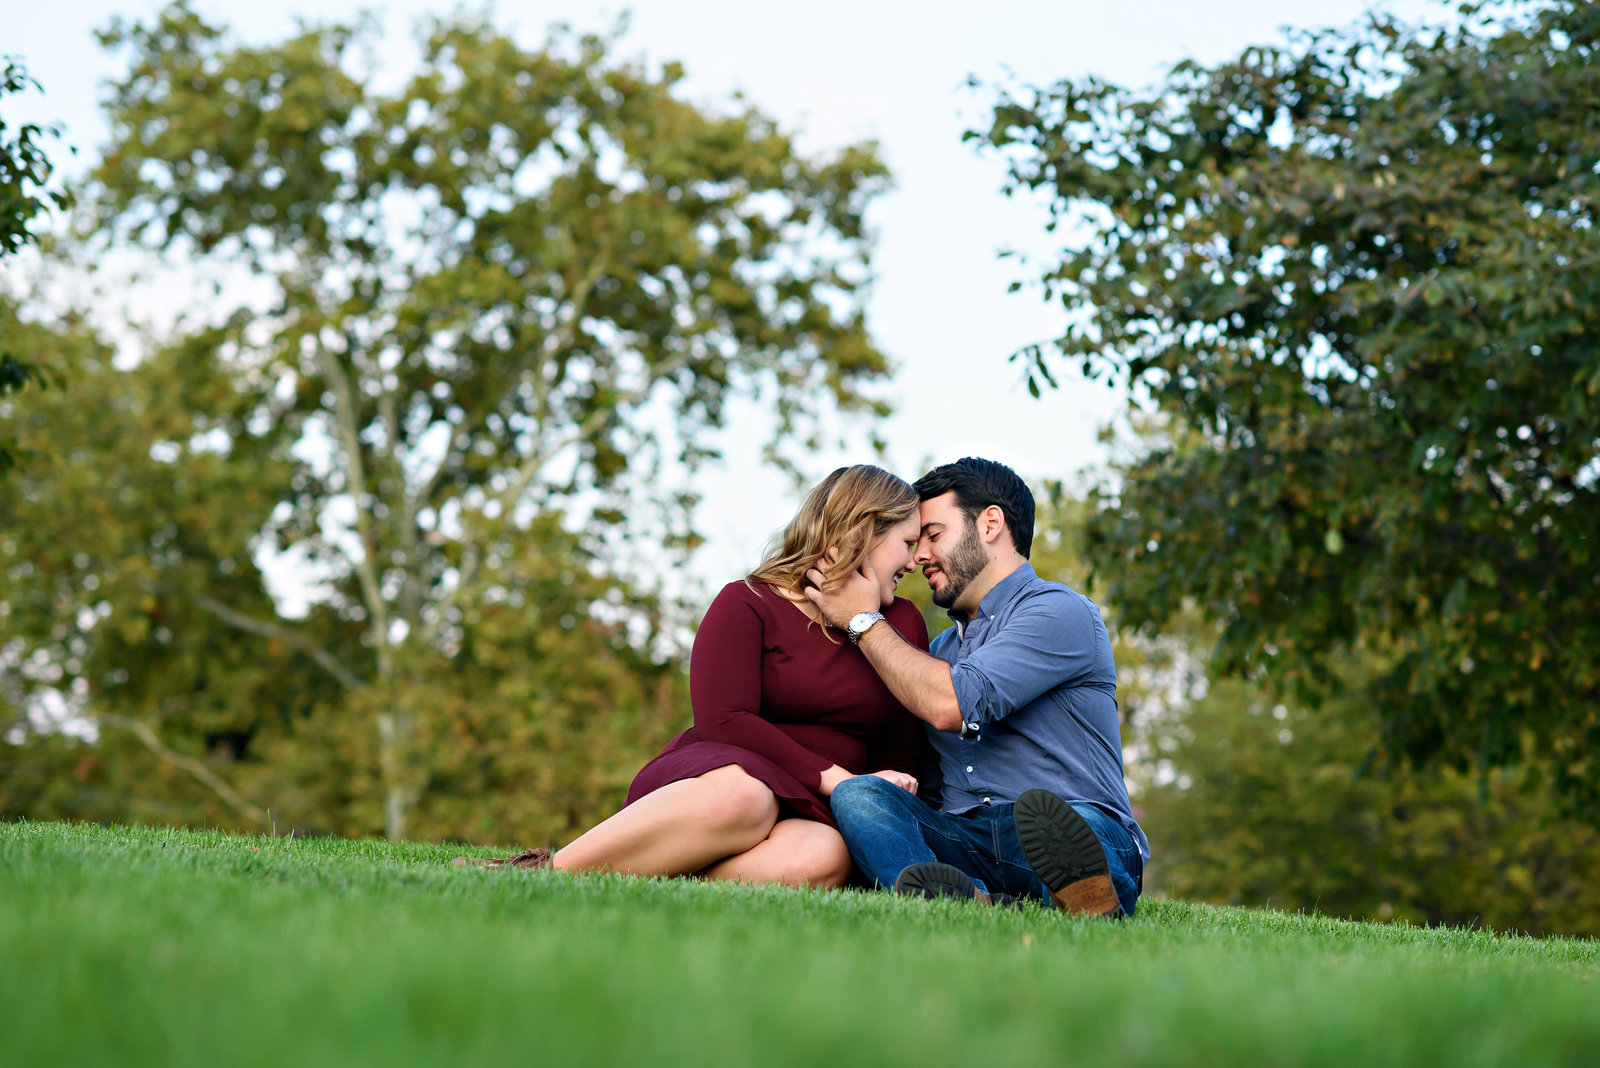 A man brings his fiance in for a kiss while sitting on the grass at the Philadelphia Museum of Art.